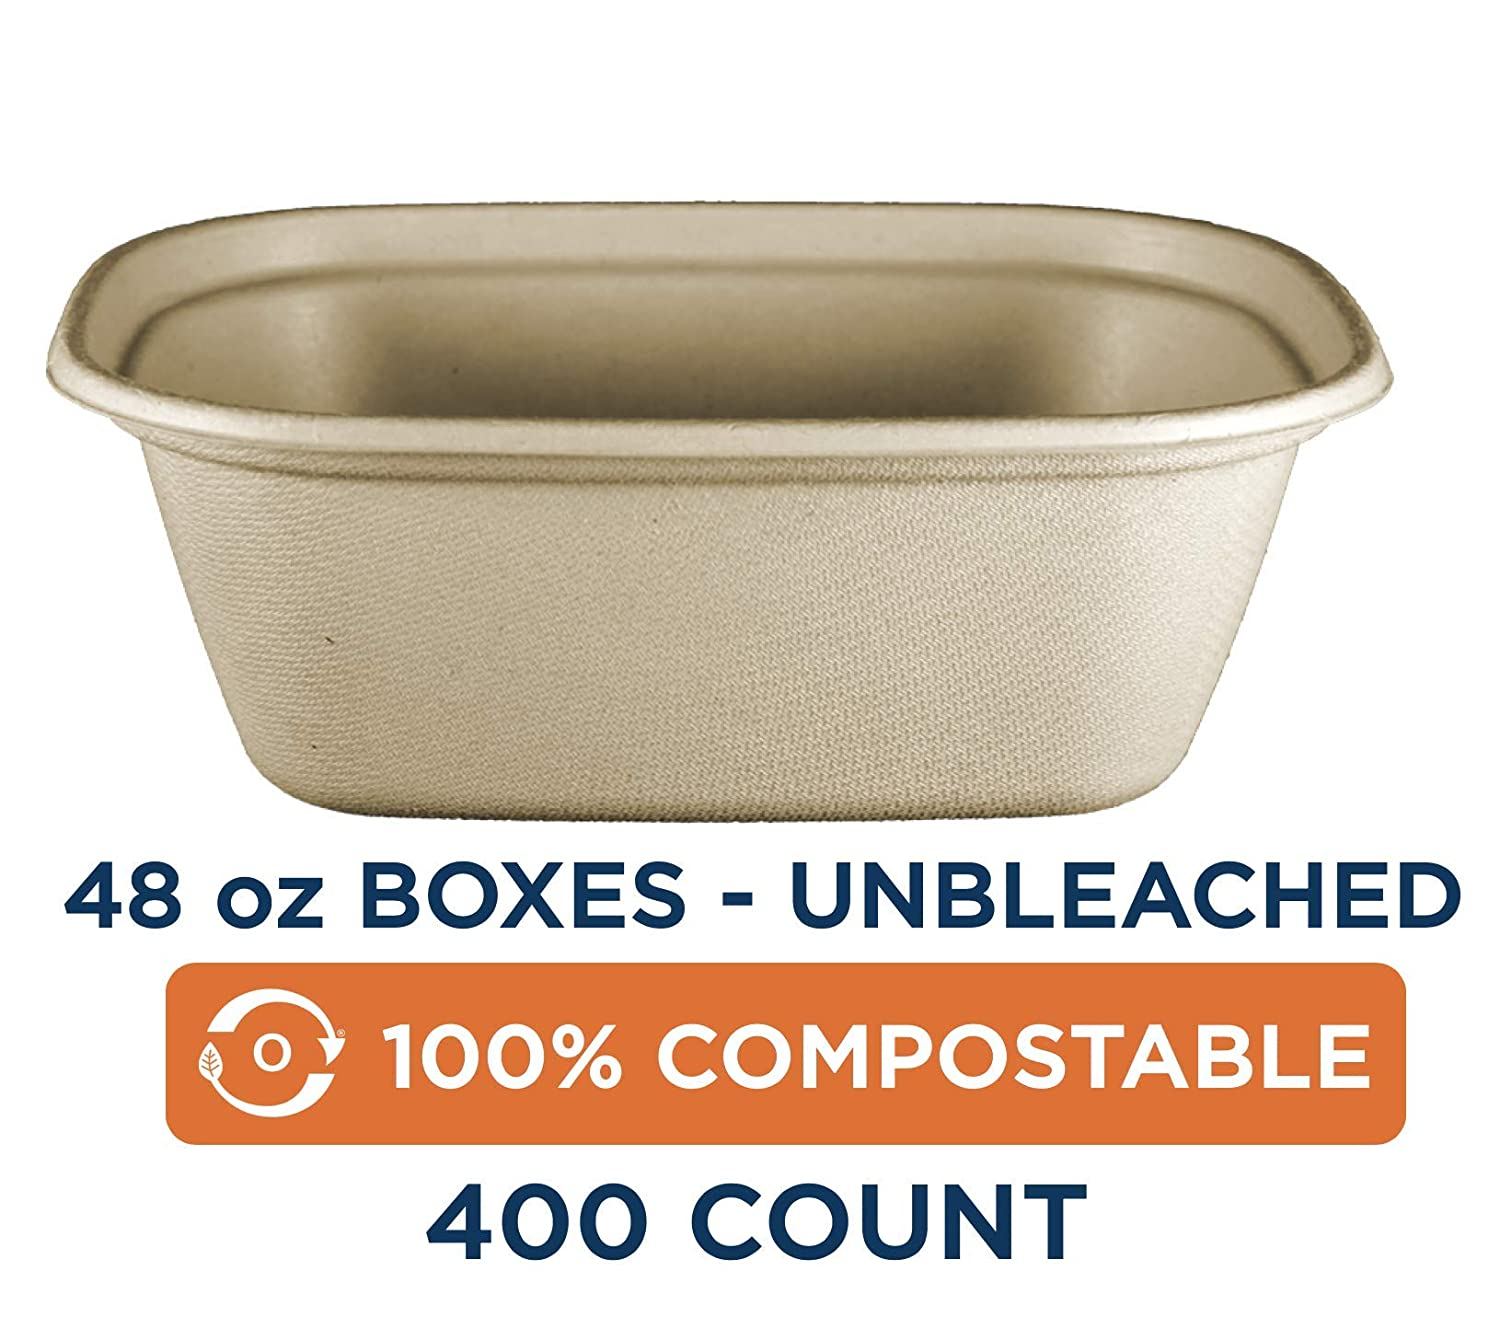 """100% Compostable to-Go Boxes by World Centric, Made from Unbleached Plant Fiber, Great for Takeout, 8.8"""" x 6.8"""" x 3"""", 48 oz, (Pack of 400) 71xtO2BFsSUL._SL1500_"""